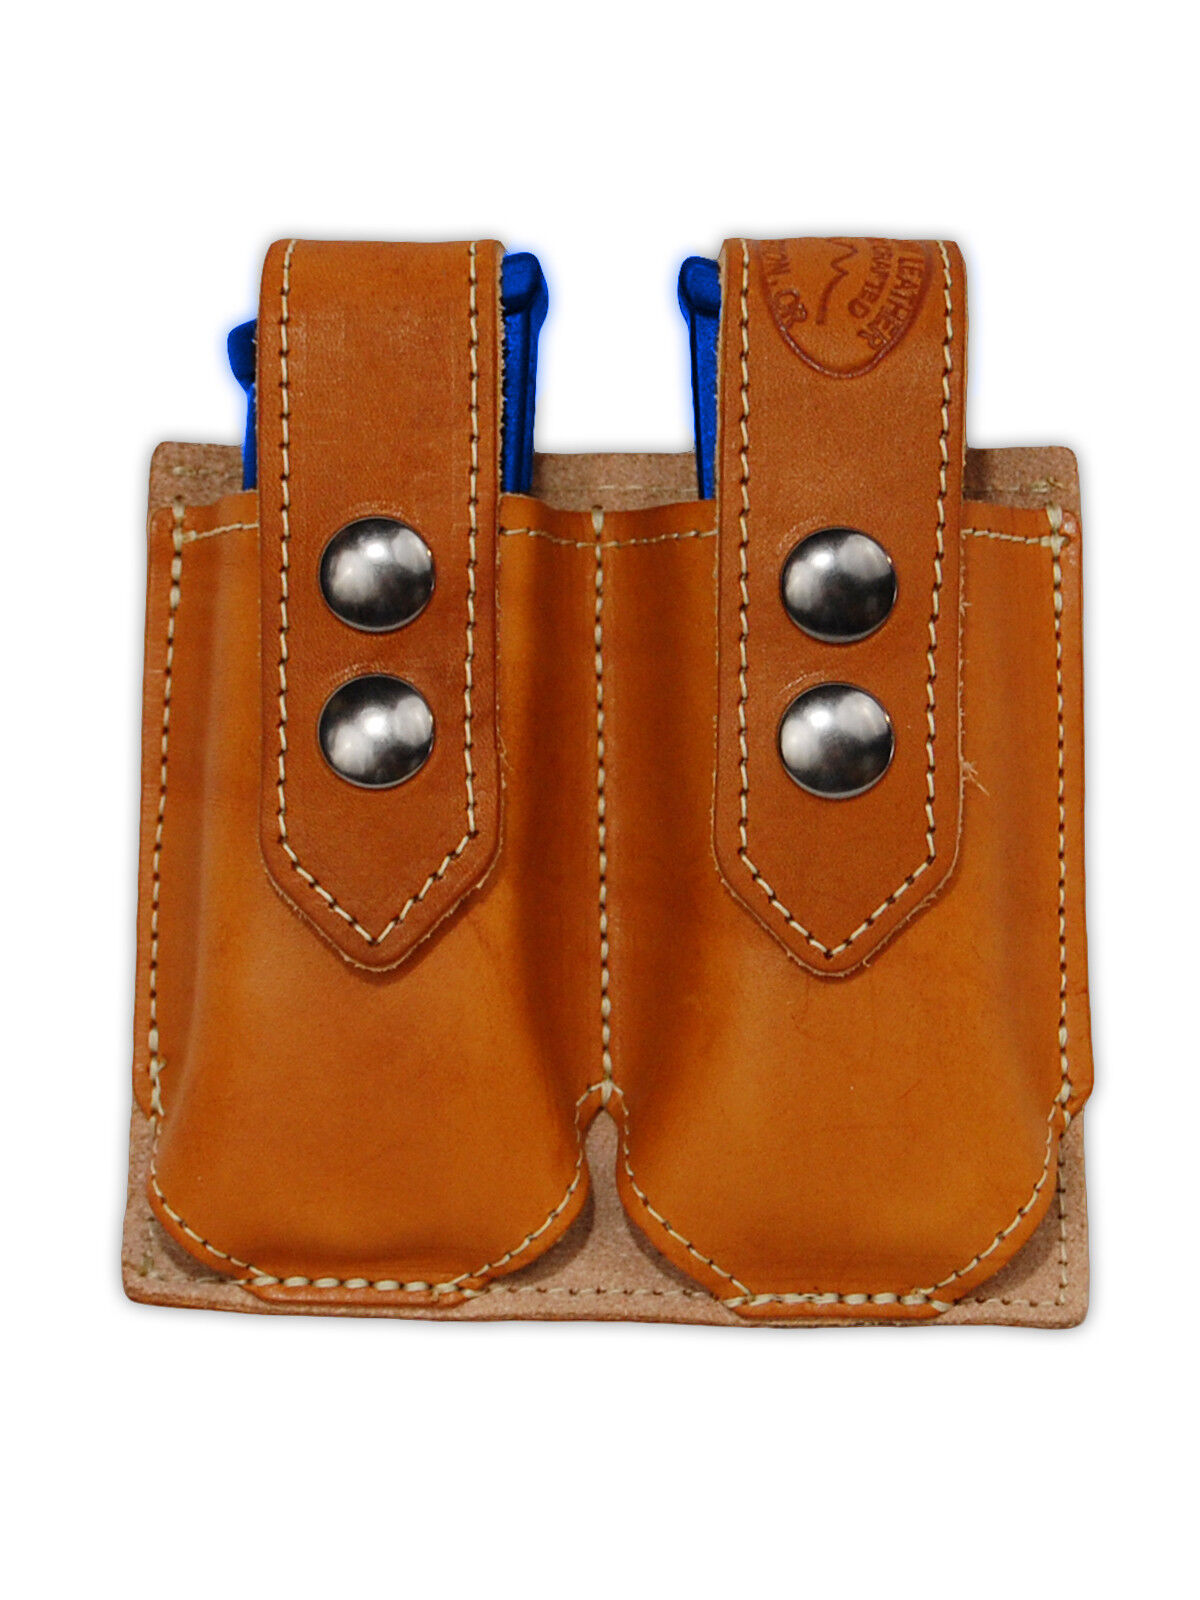 NEW Barsony Tan Leather Double Magazine Pouch Steyr Walther Full Size 9mm 40 45